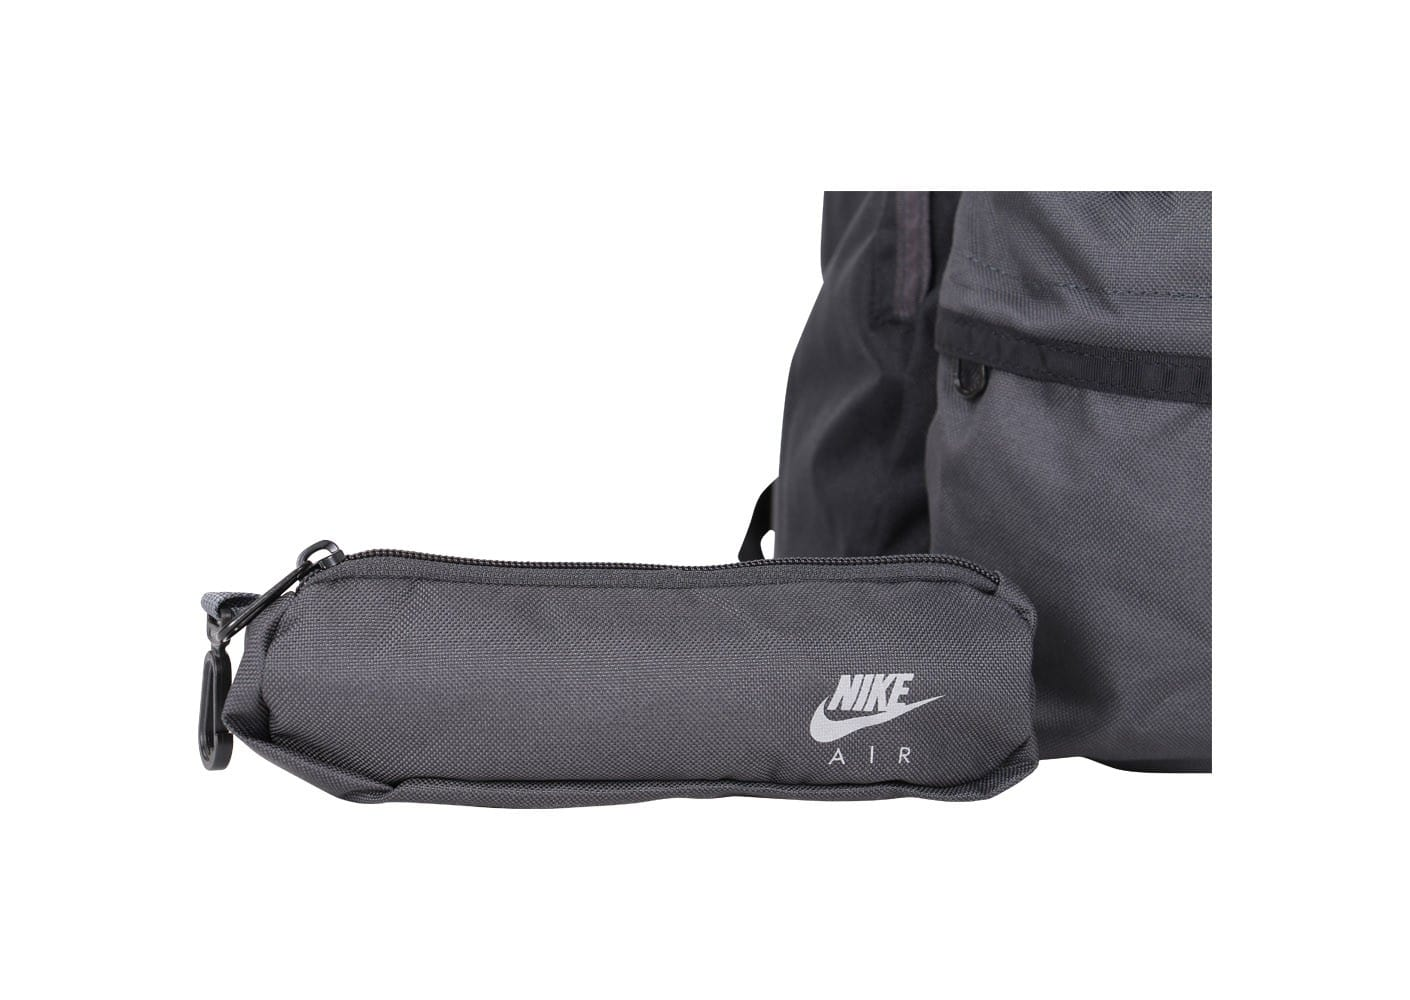 super cheap more photos available Nike Sac A Dos Nike Air Noir Et Gris - Sacs & Sacoches ...